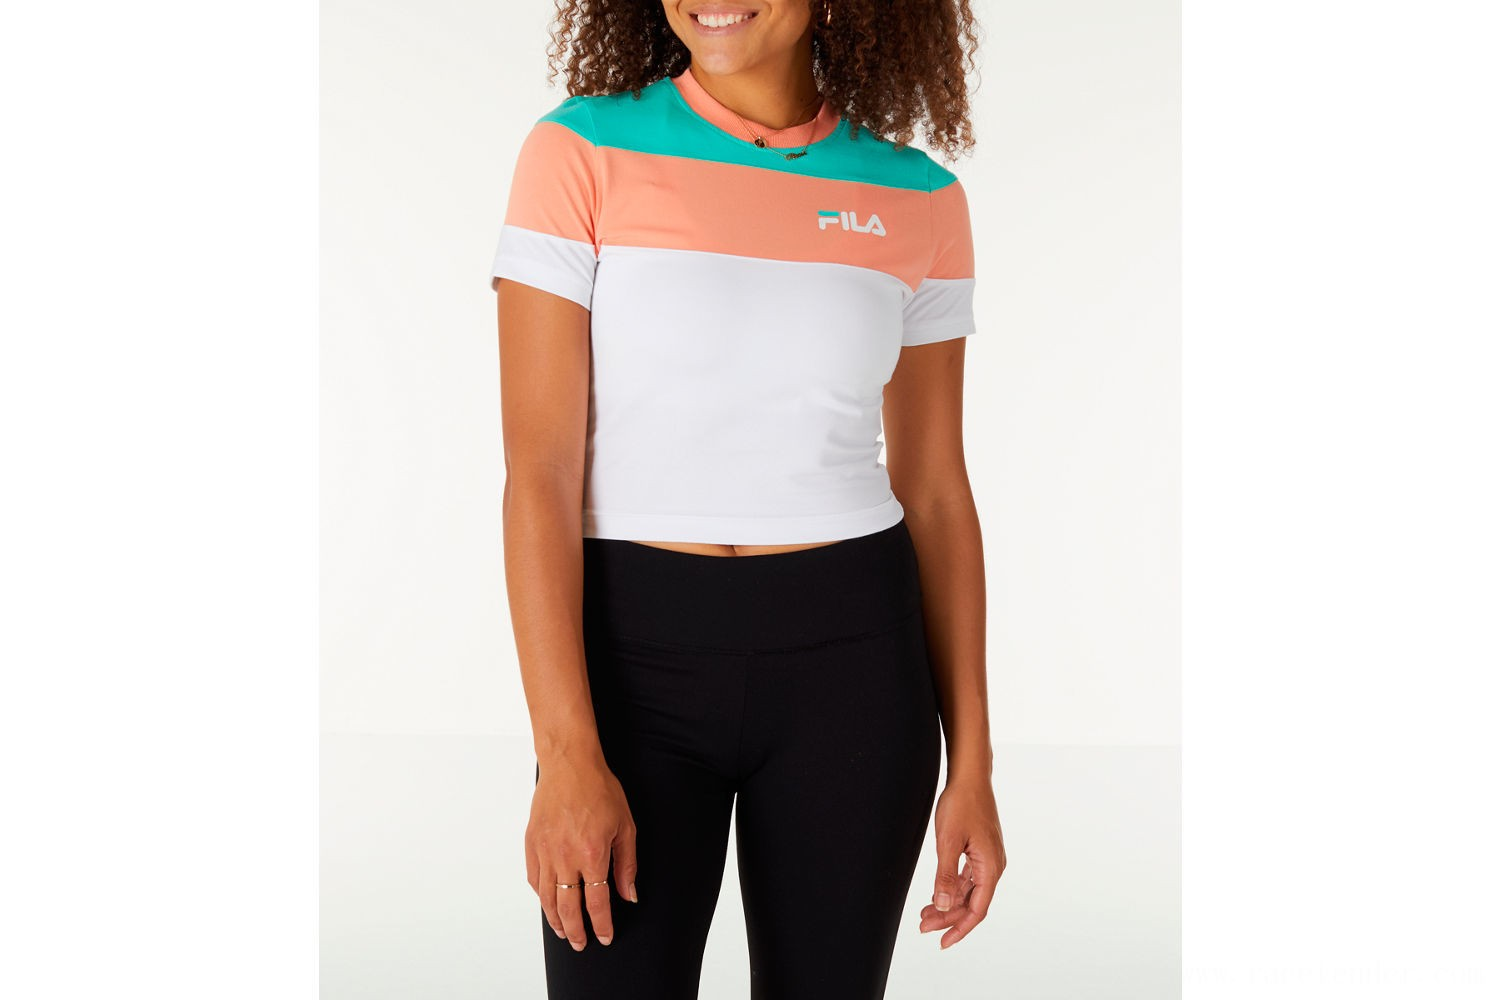 Fila Women's Maya Crop T-Shirt - White/Green/Peach